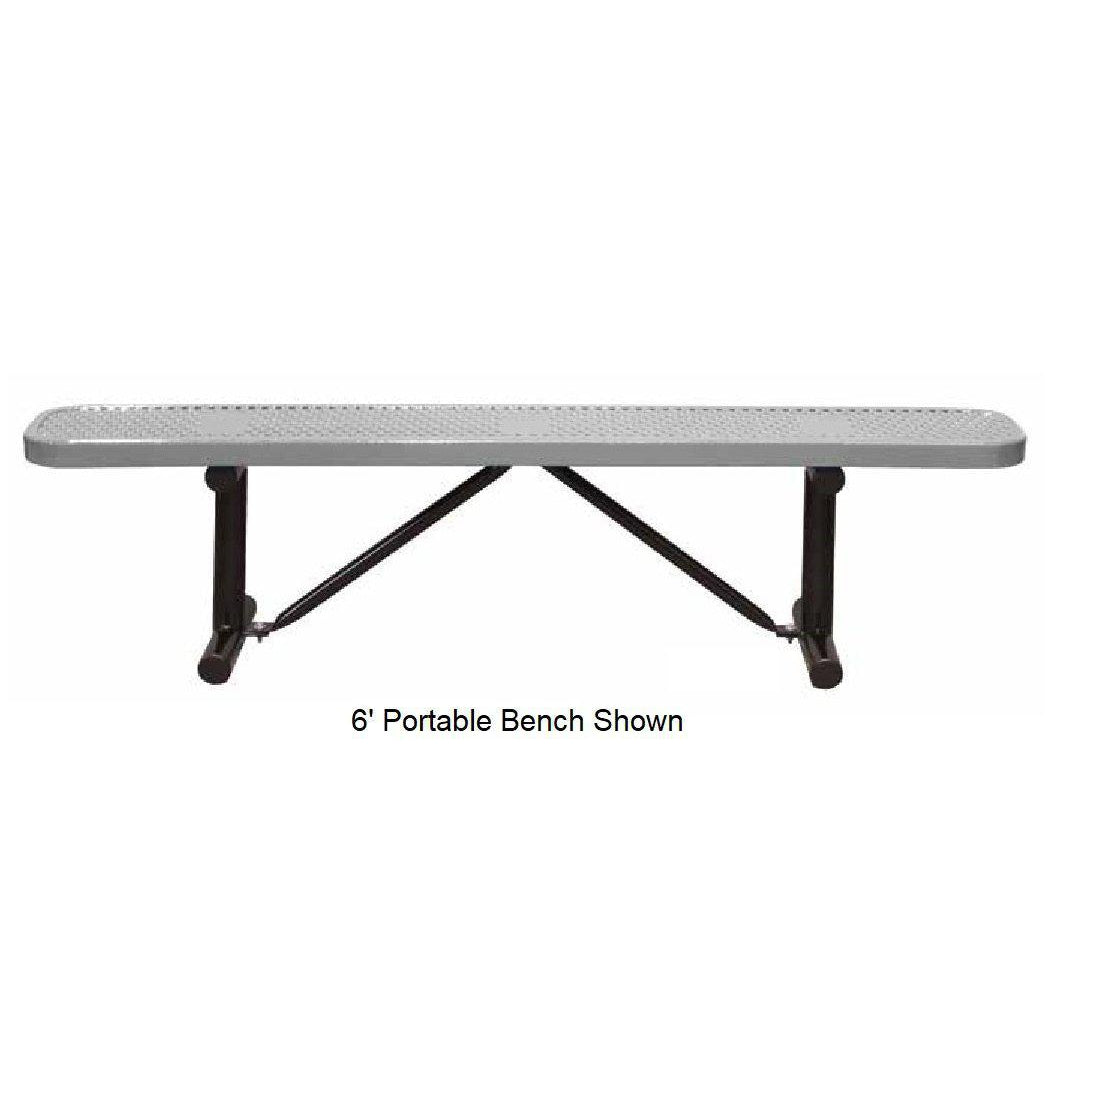 15' Standard Perforated Bench Without Back, Portable